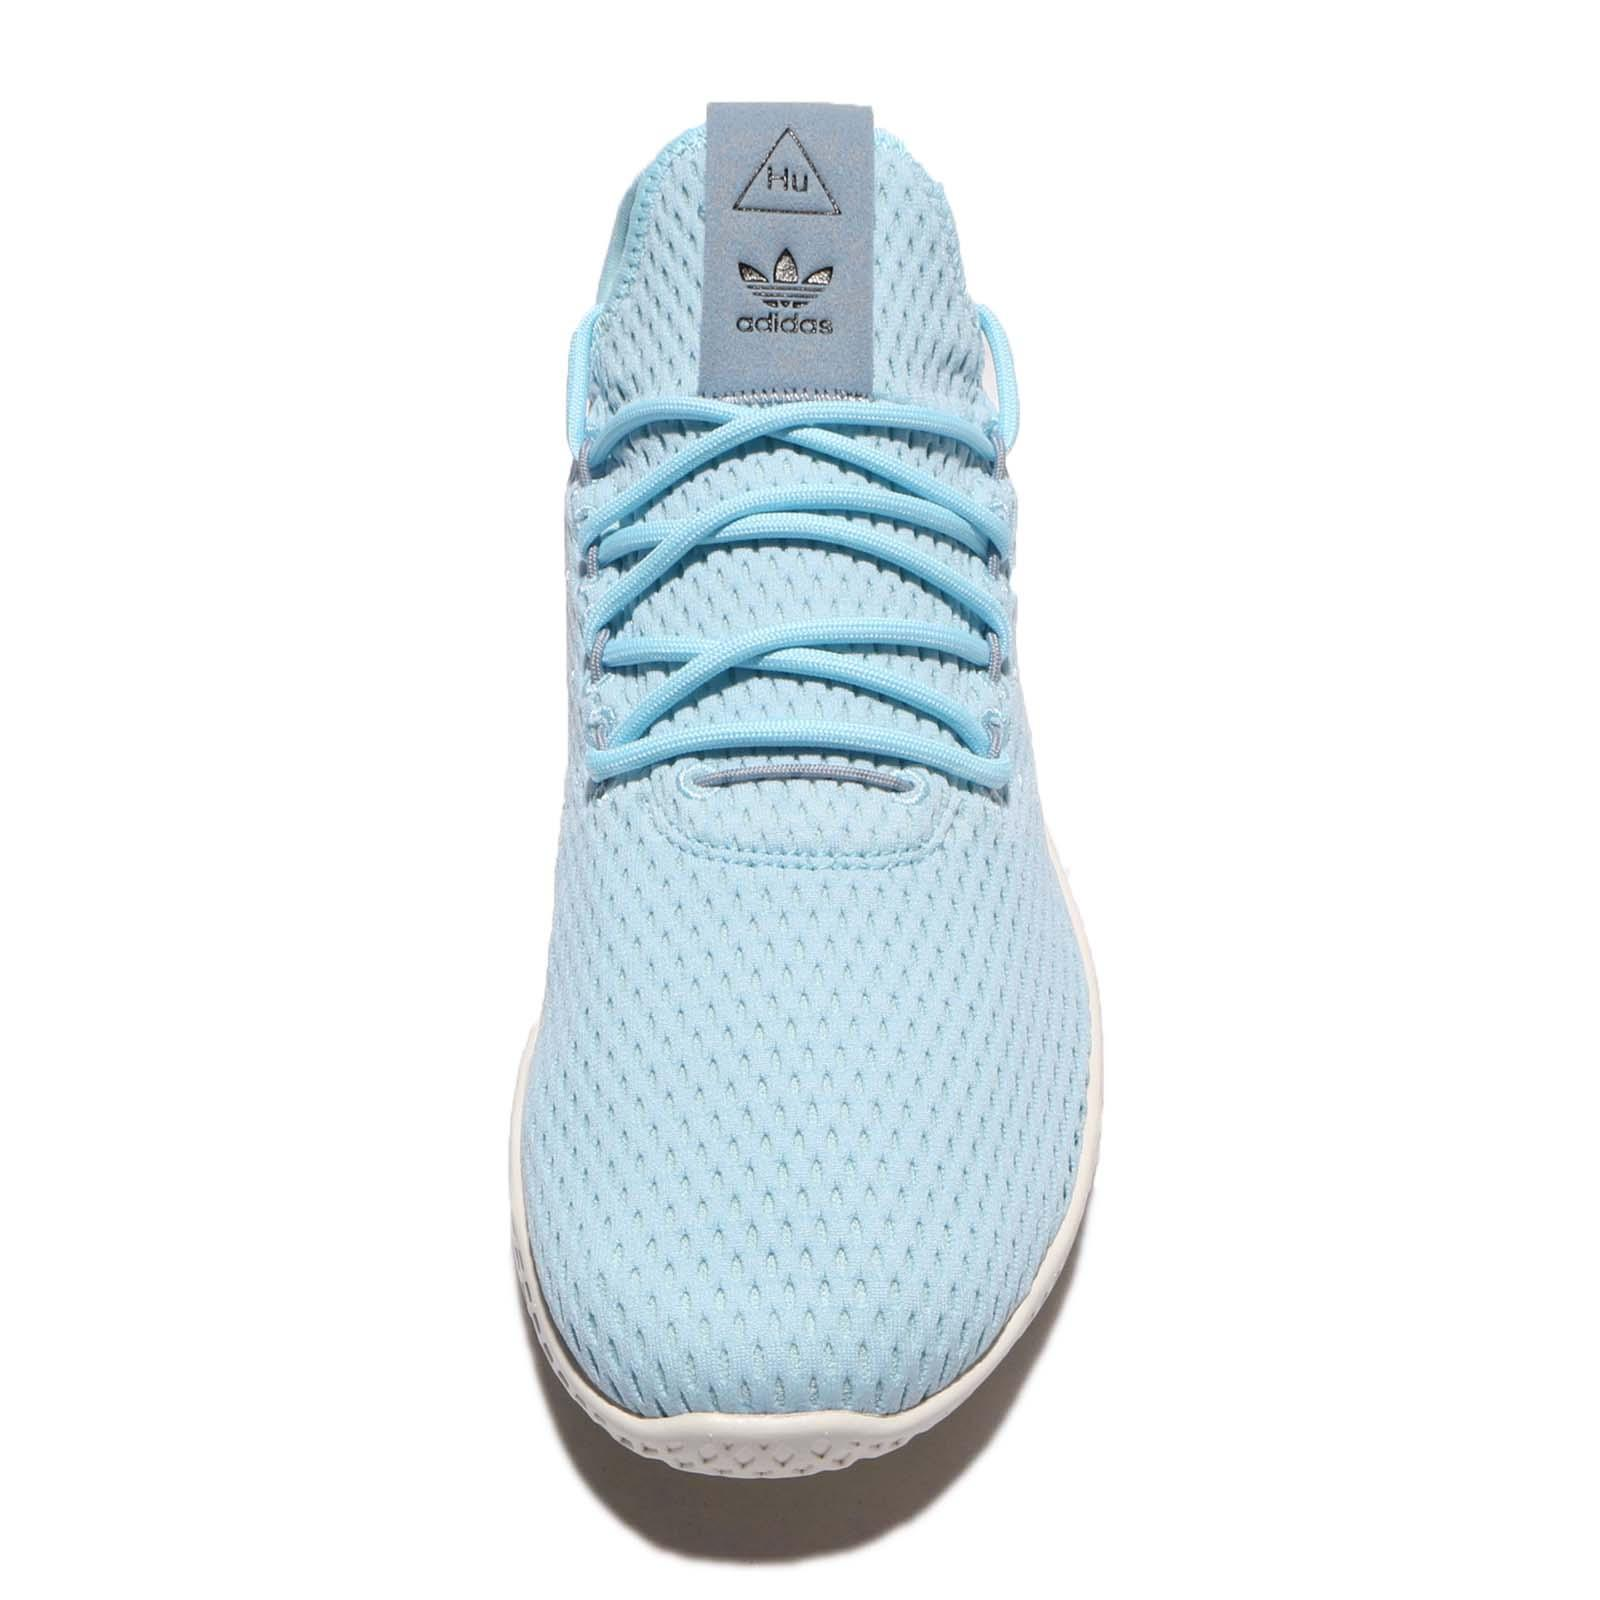 ca63eef3f ... adidas x Pharrell Williams PW Tennis HU Tennis Human Ice Blu ...